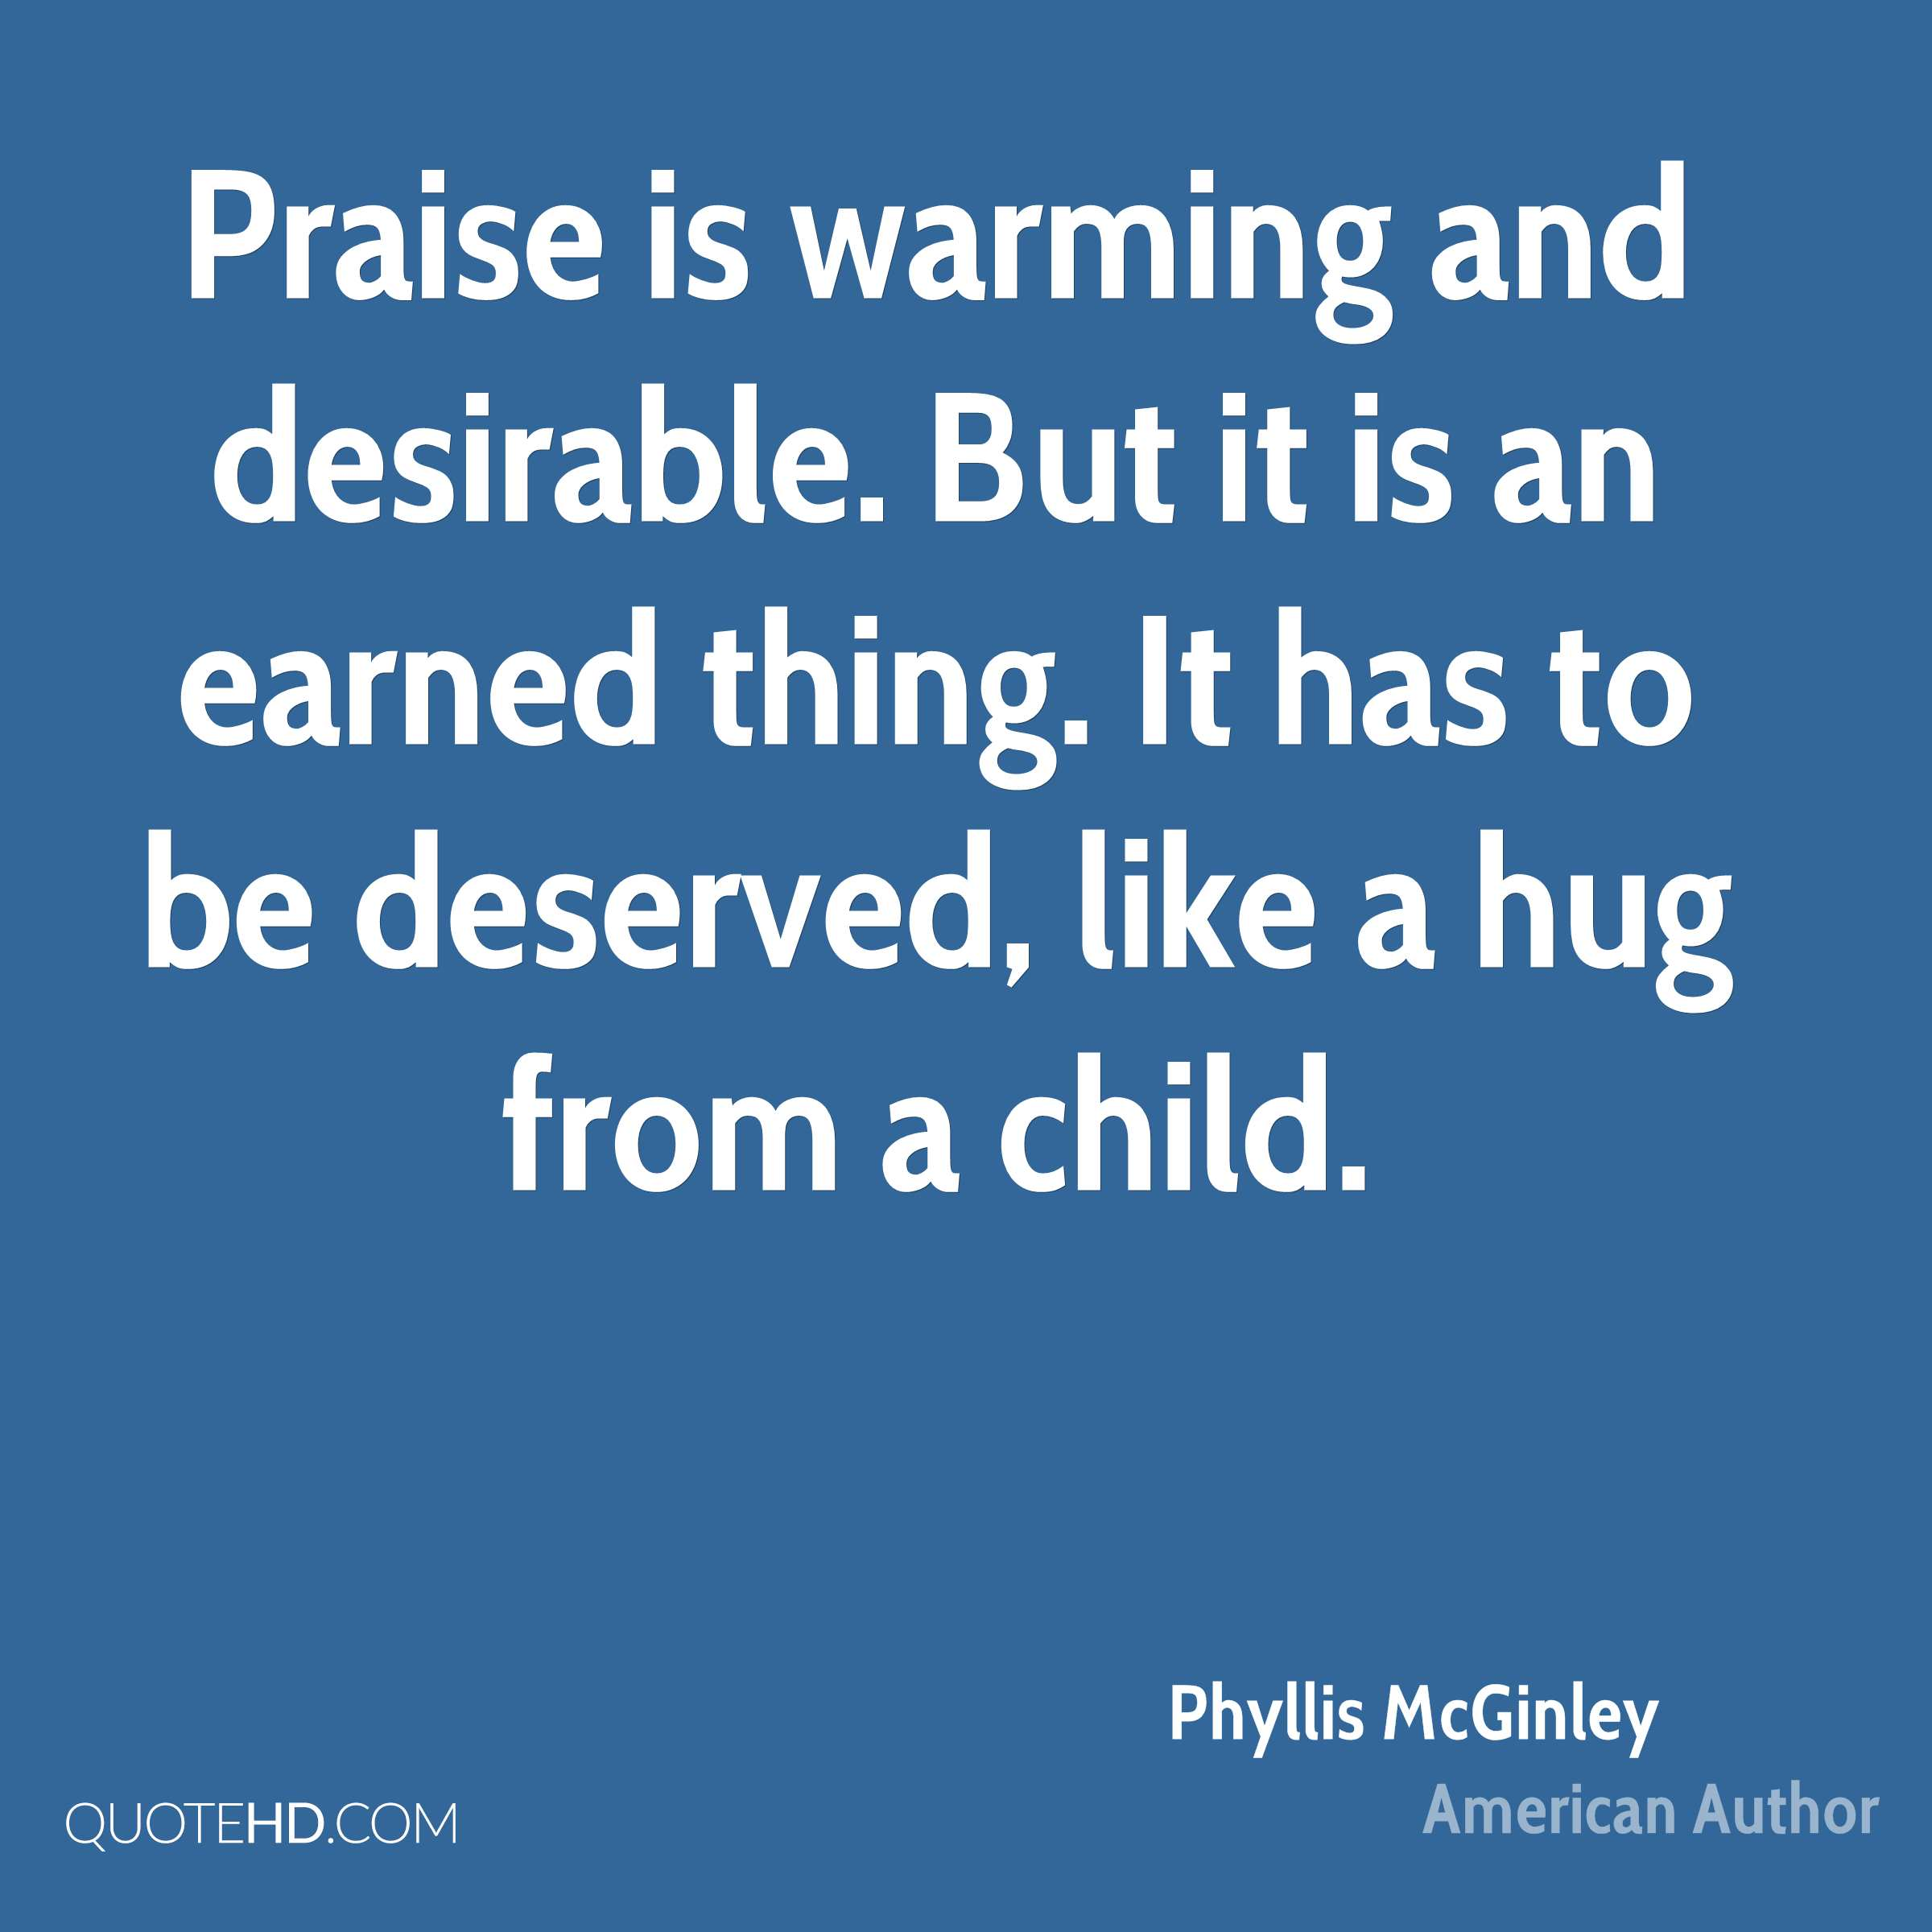 Praise is warming and desirable. But it is an earned thing. It has to be deserved, like a hug from a child.